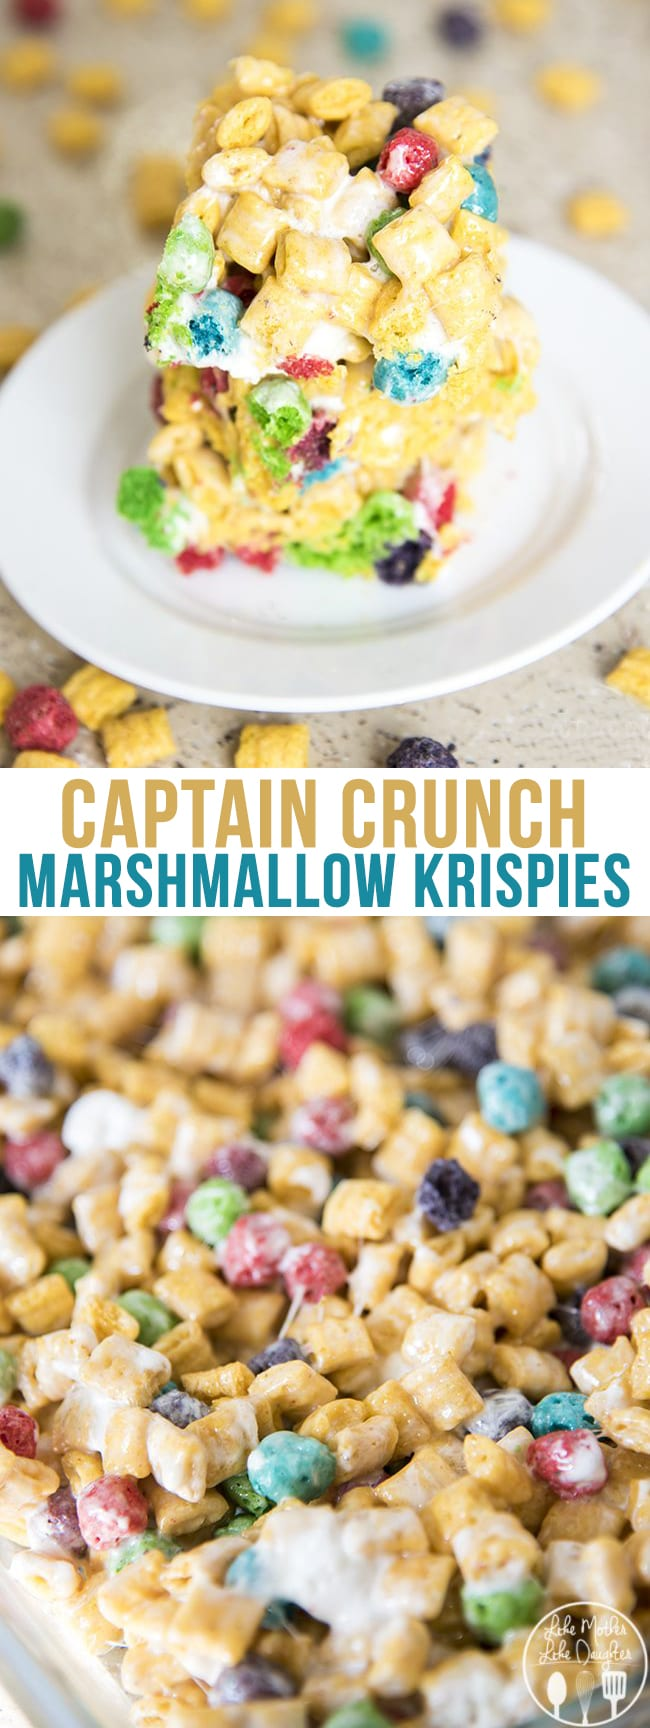 Captain crunch marshmallow krispies lmldfood captain crunch rice krispies are gooey cereal bars made with captain crunch cereal and marshmallows ccuart Image collections